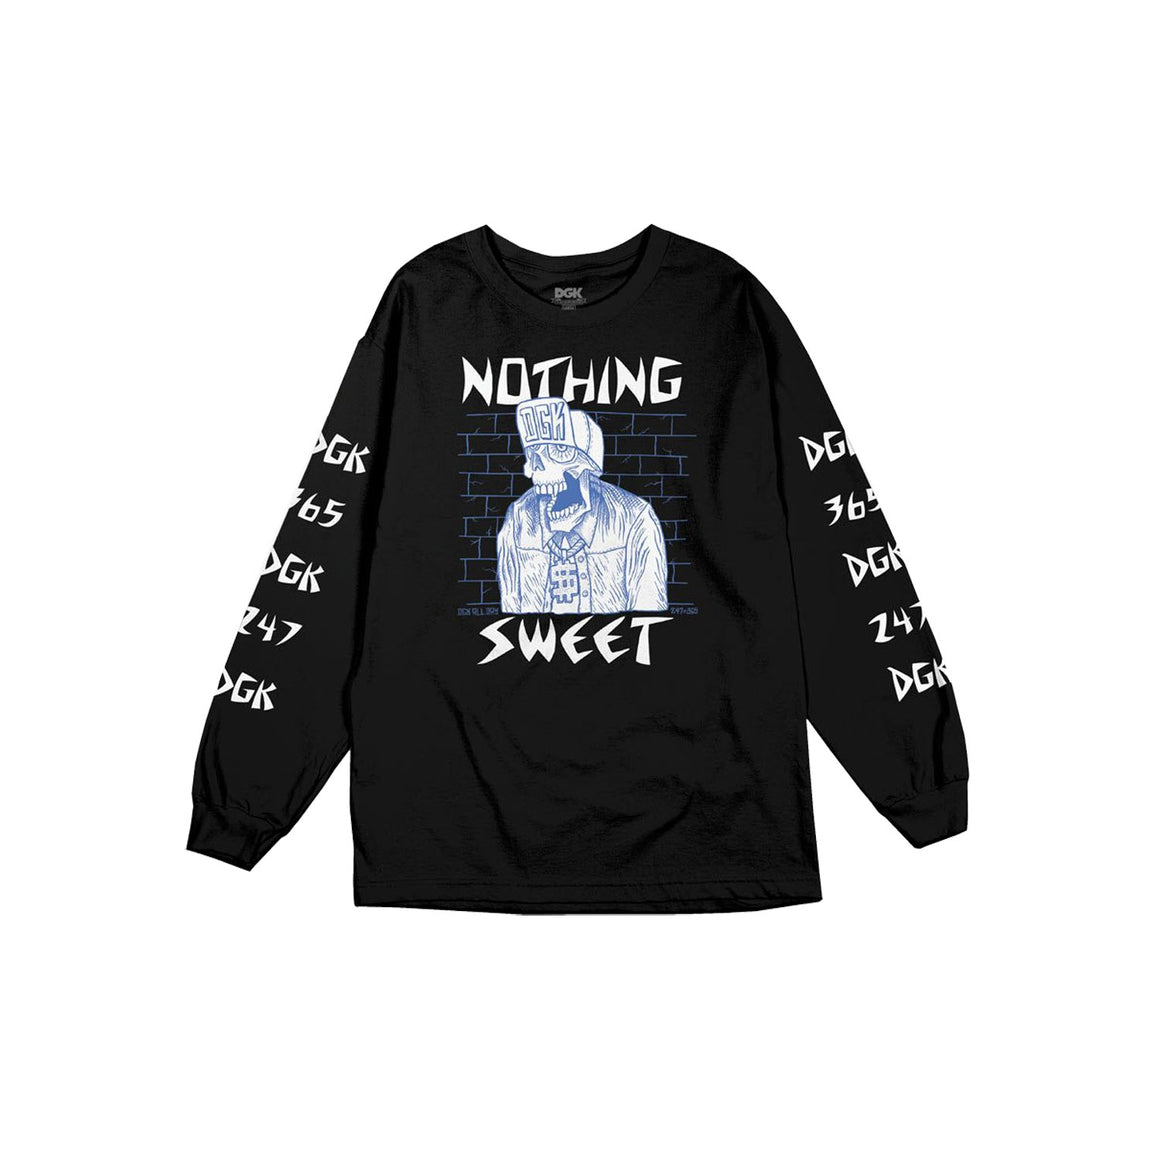 DGK Nothings Sweet L/S (Black)